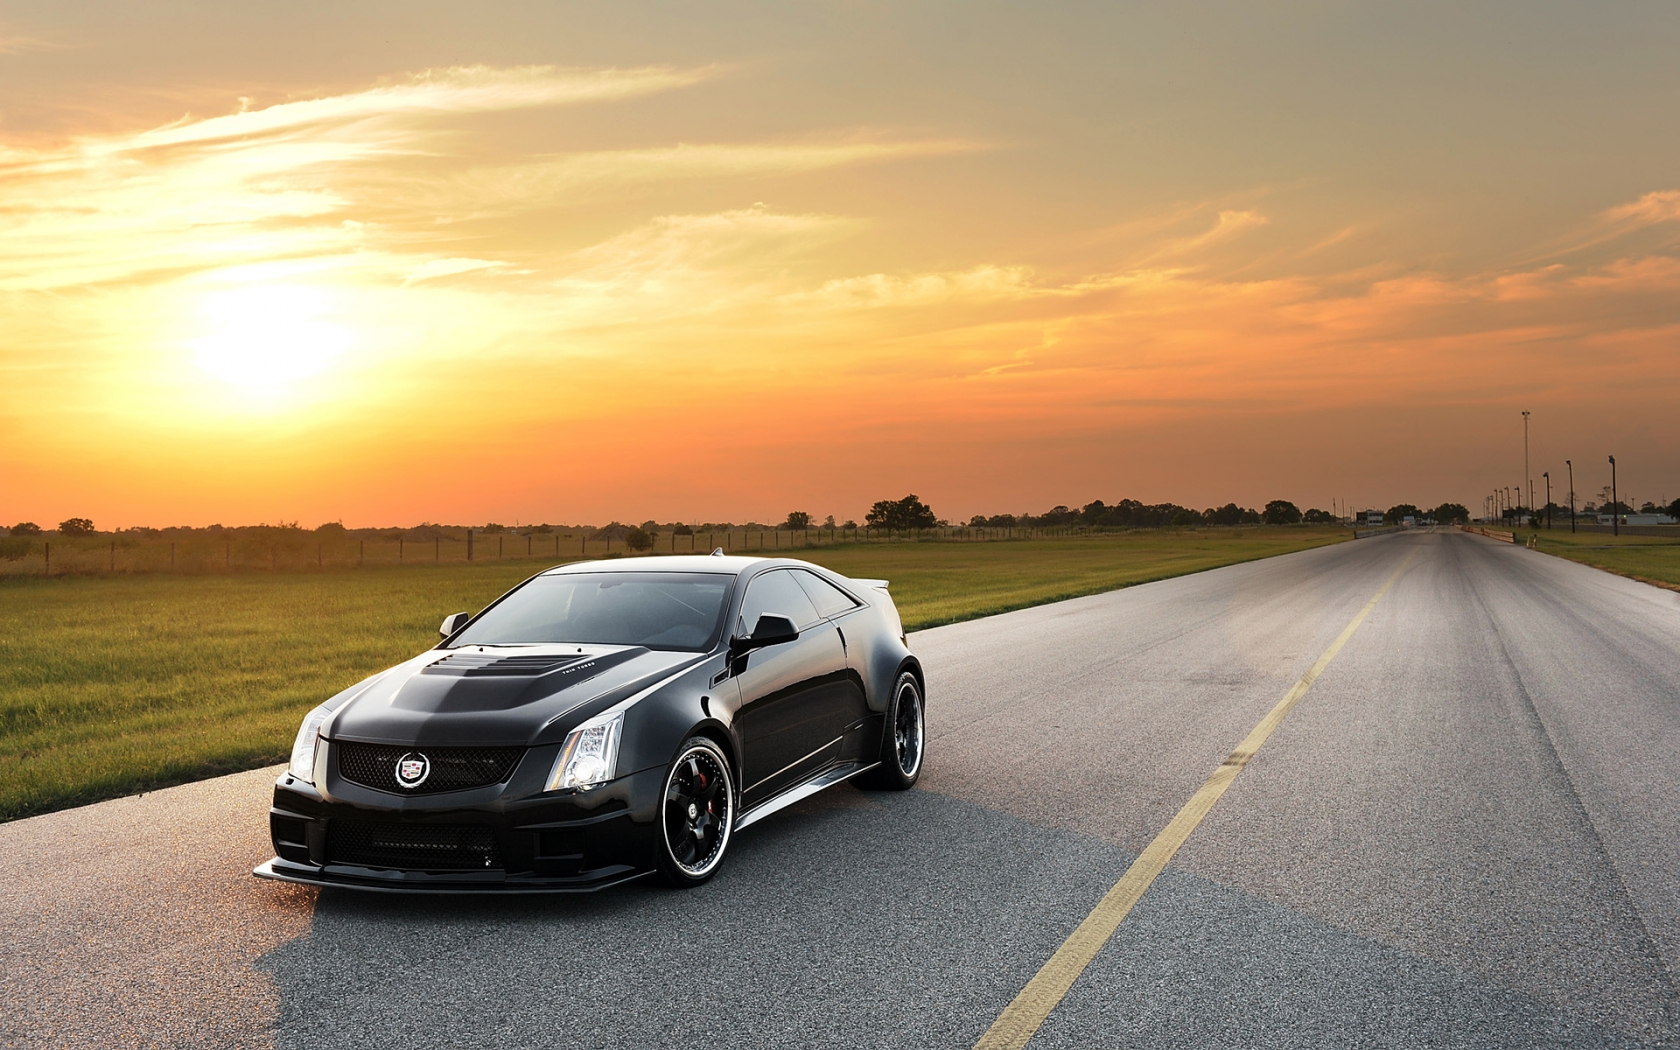 Hennessey Cadillac VR1200 - 1680x1050